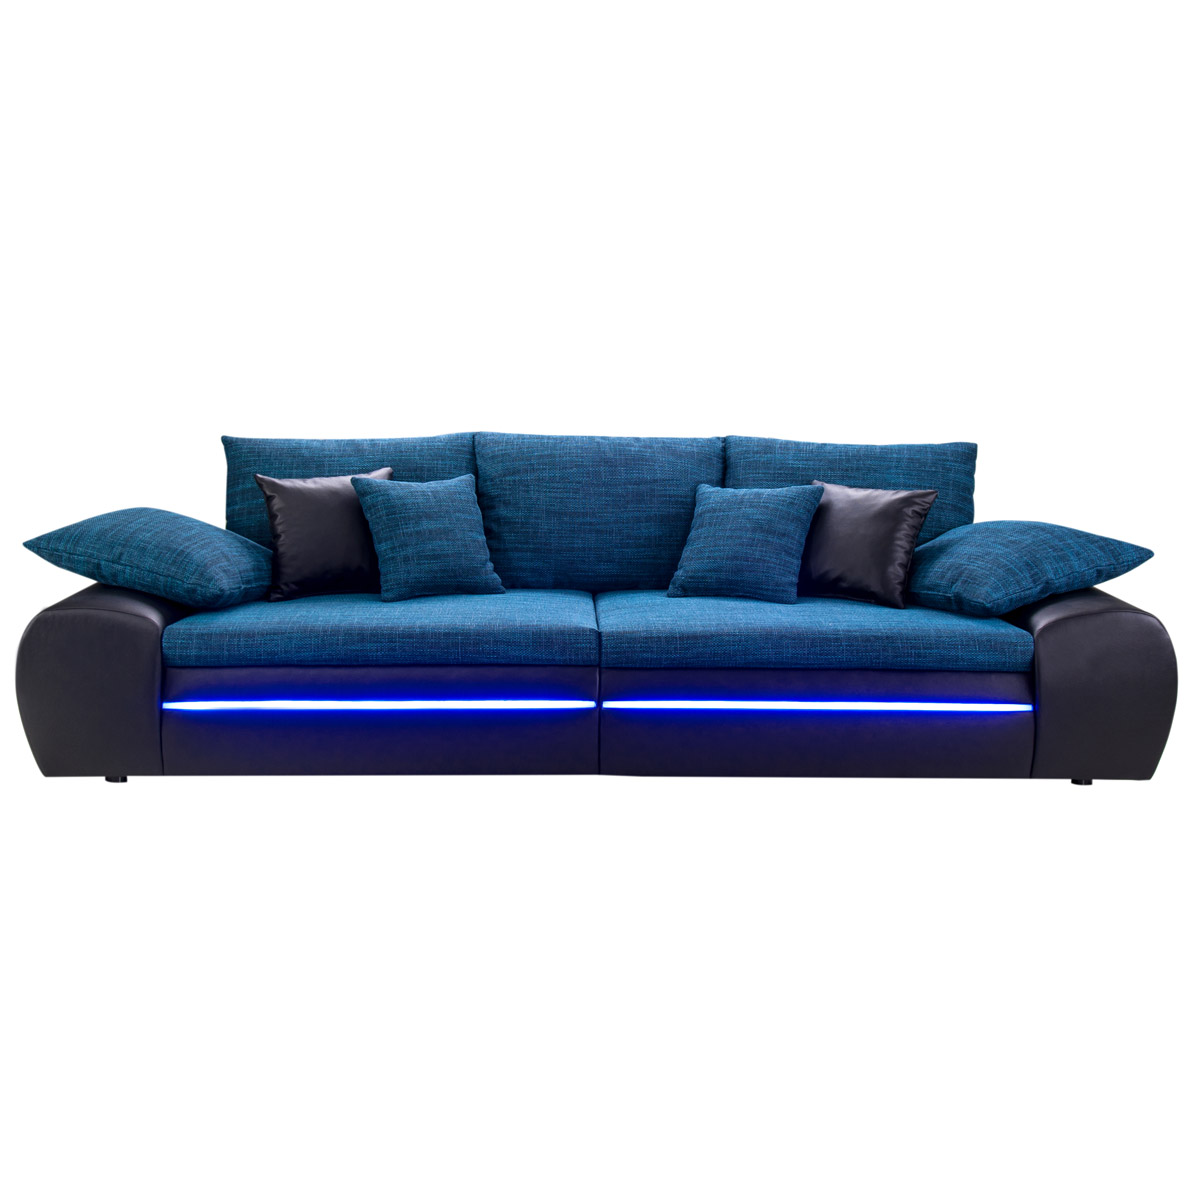 big sofa dubai megasofa wohnlandschaft schwarz und blau inkl rgb led ebay. Black Bedroom Furniture Sets. Home Design Ideas